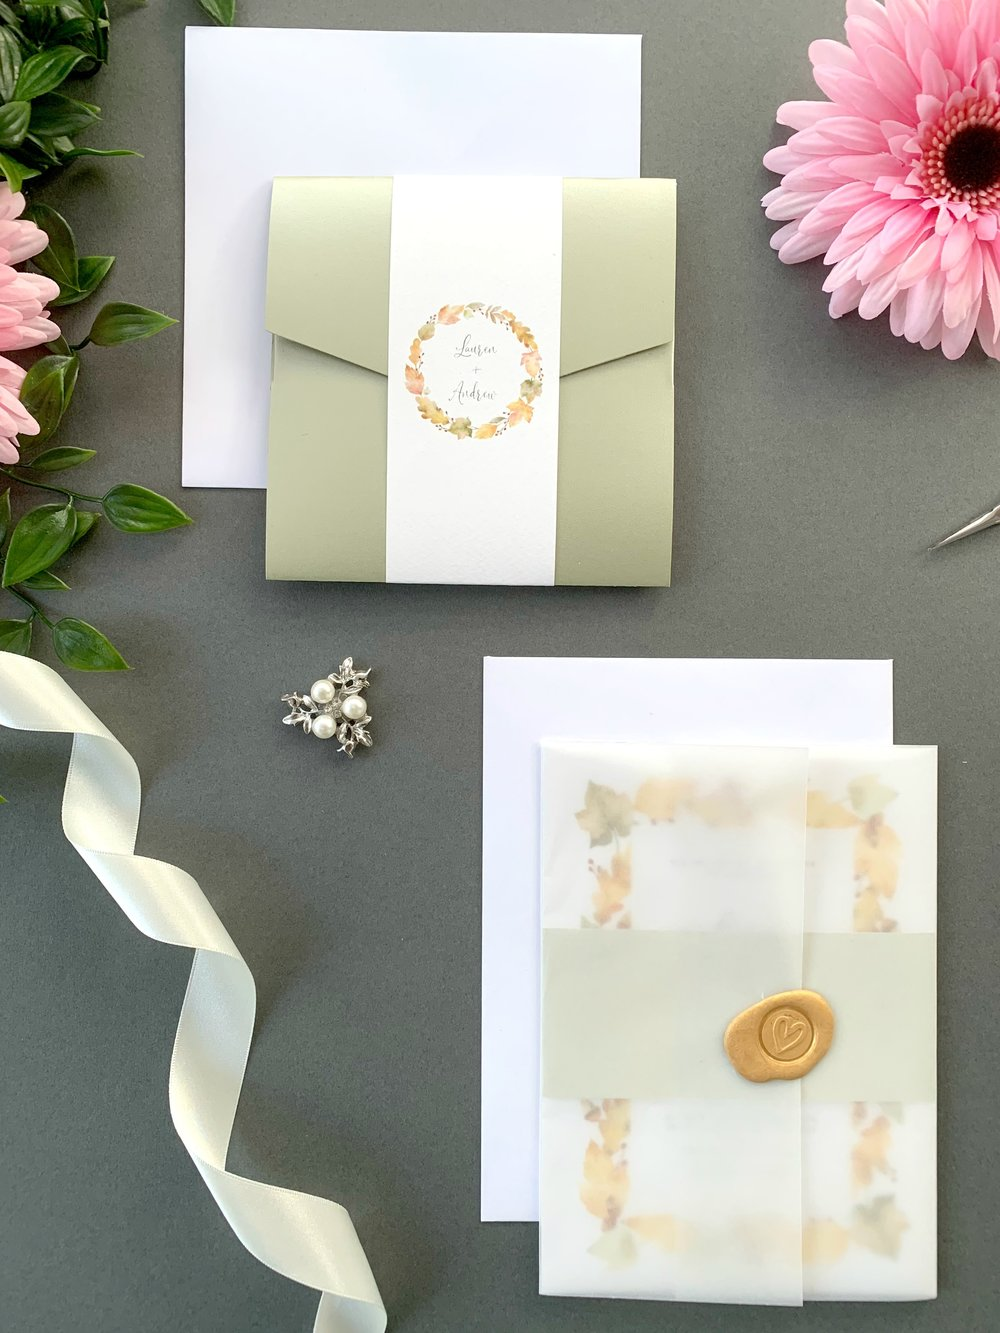 Richmond Pocketfold Suite with Paper Belly Band, Invitation Suite with Paper Belly Band, Vellum Jacket and Copper Wax Seal